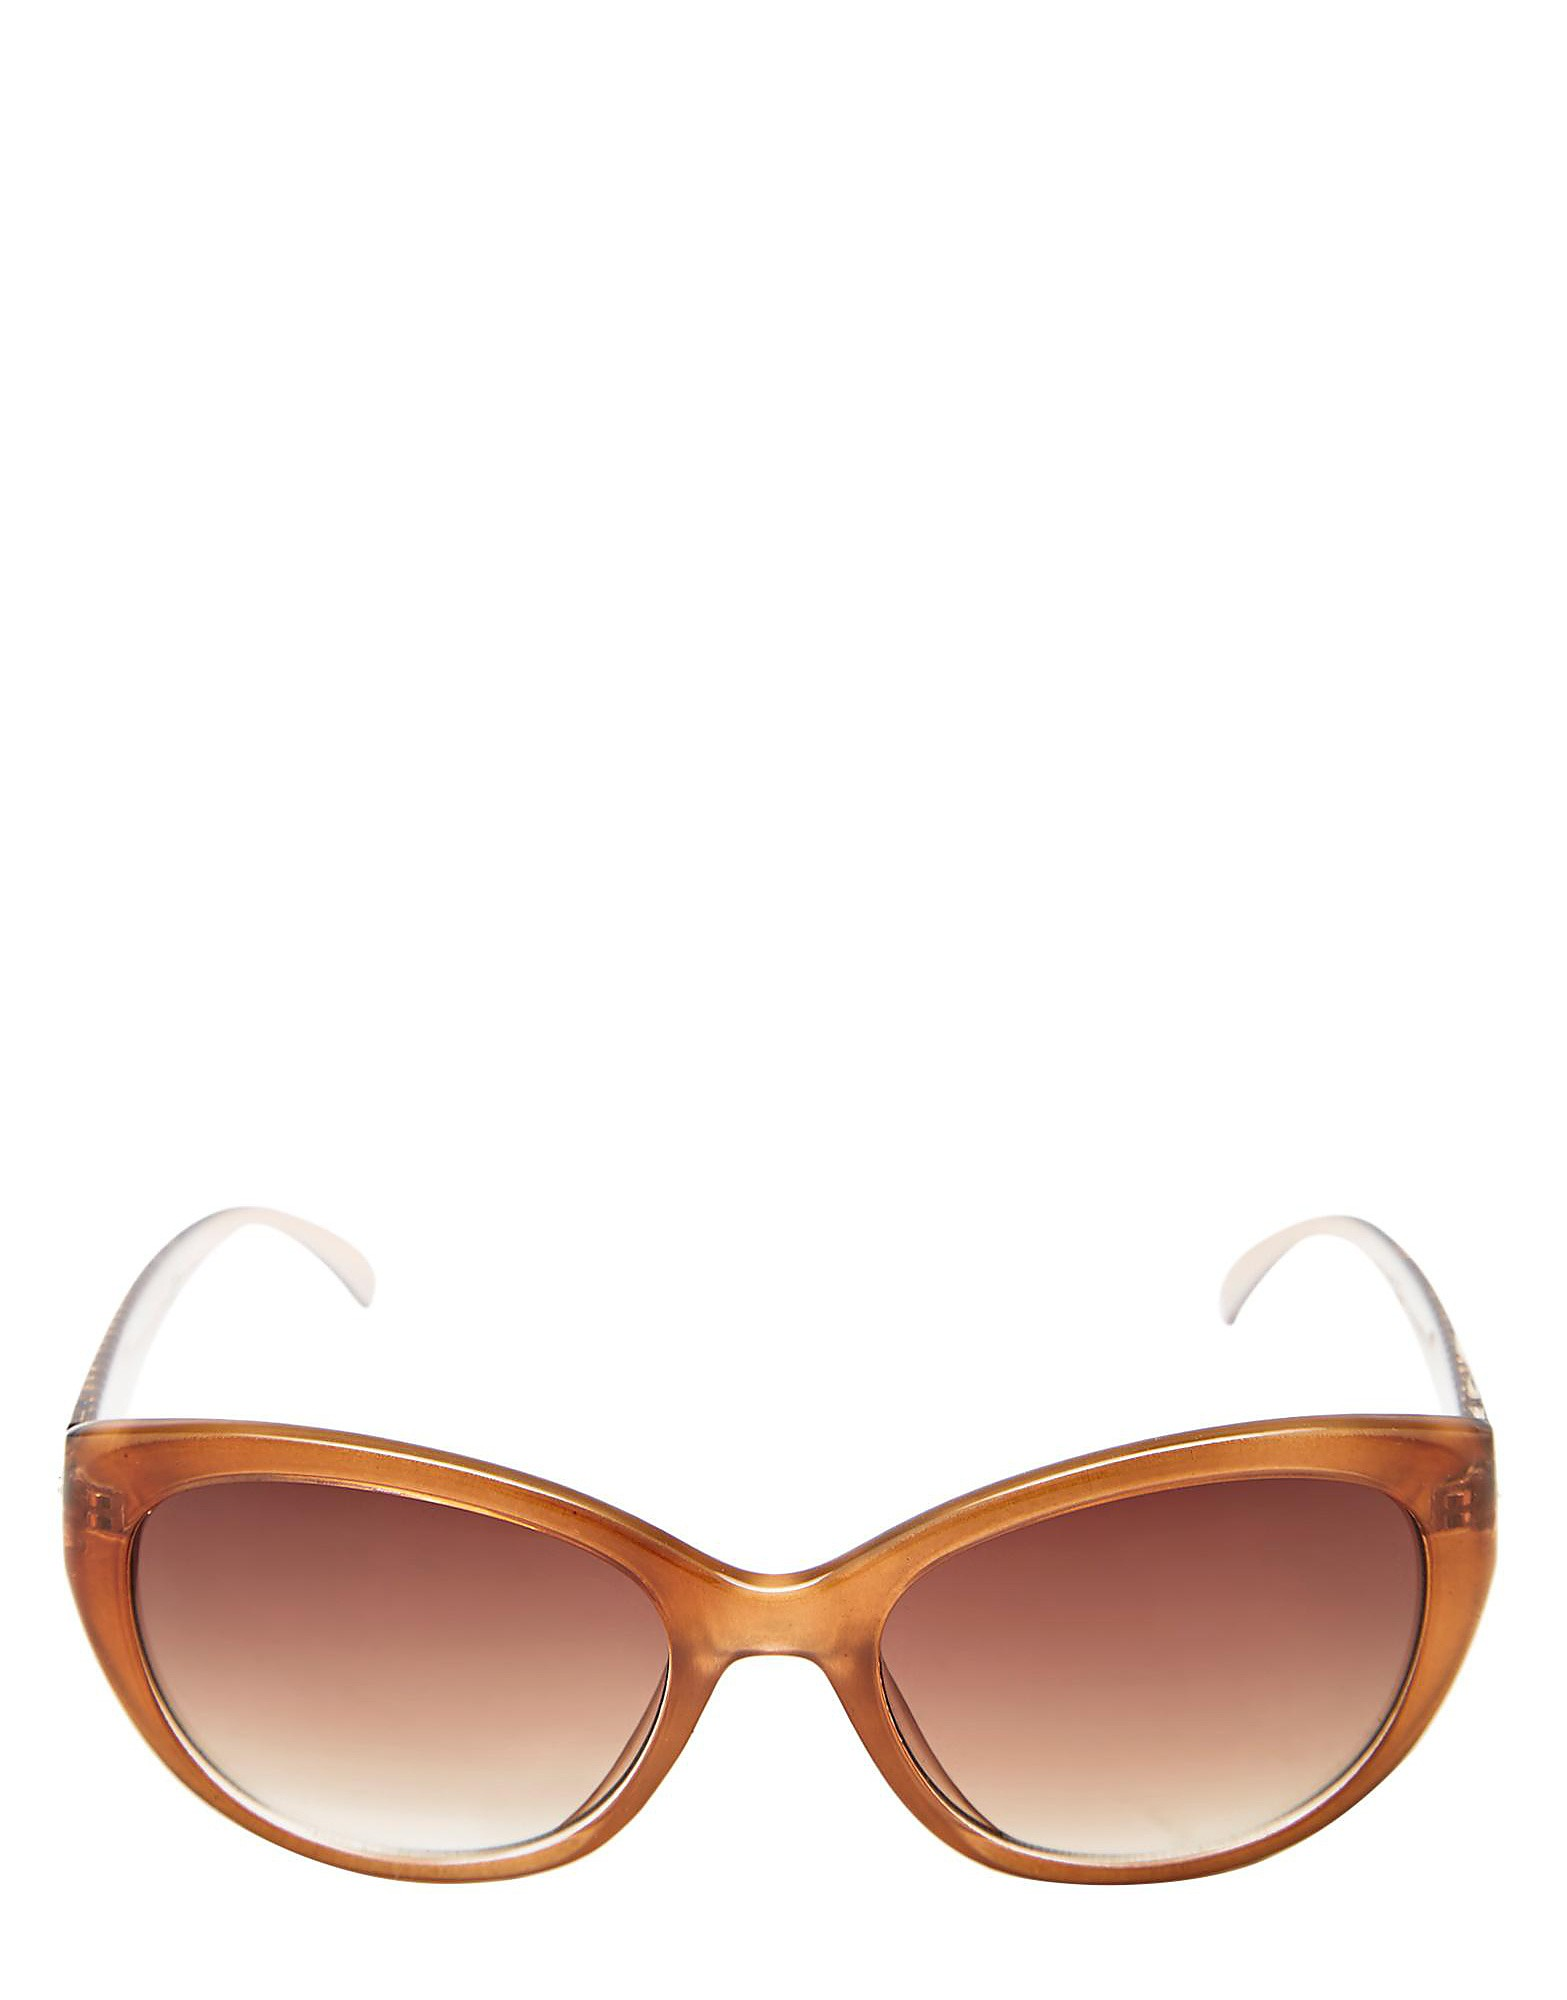 Brookhaven Alex Sunglasses